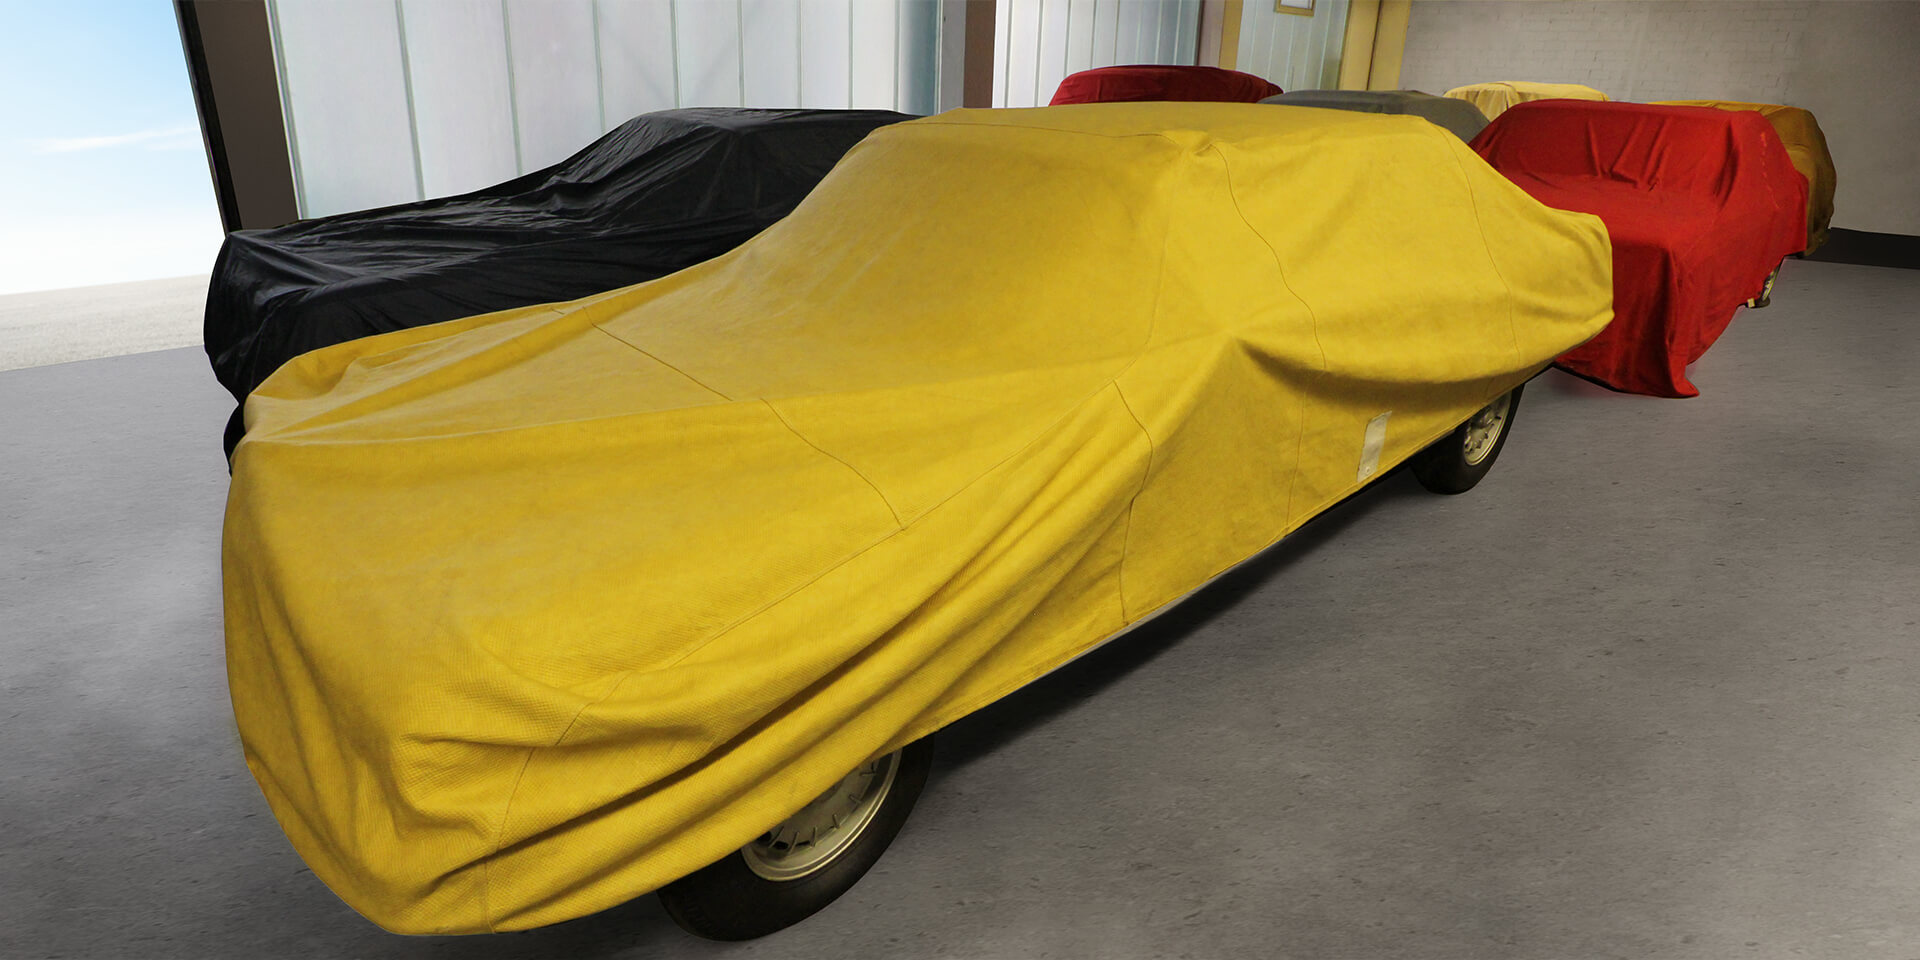 Safeguarding the value of vintage cars